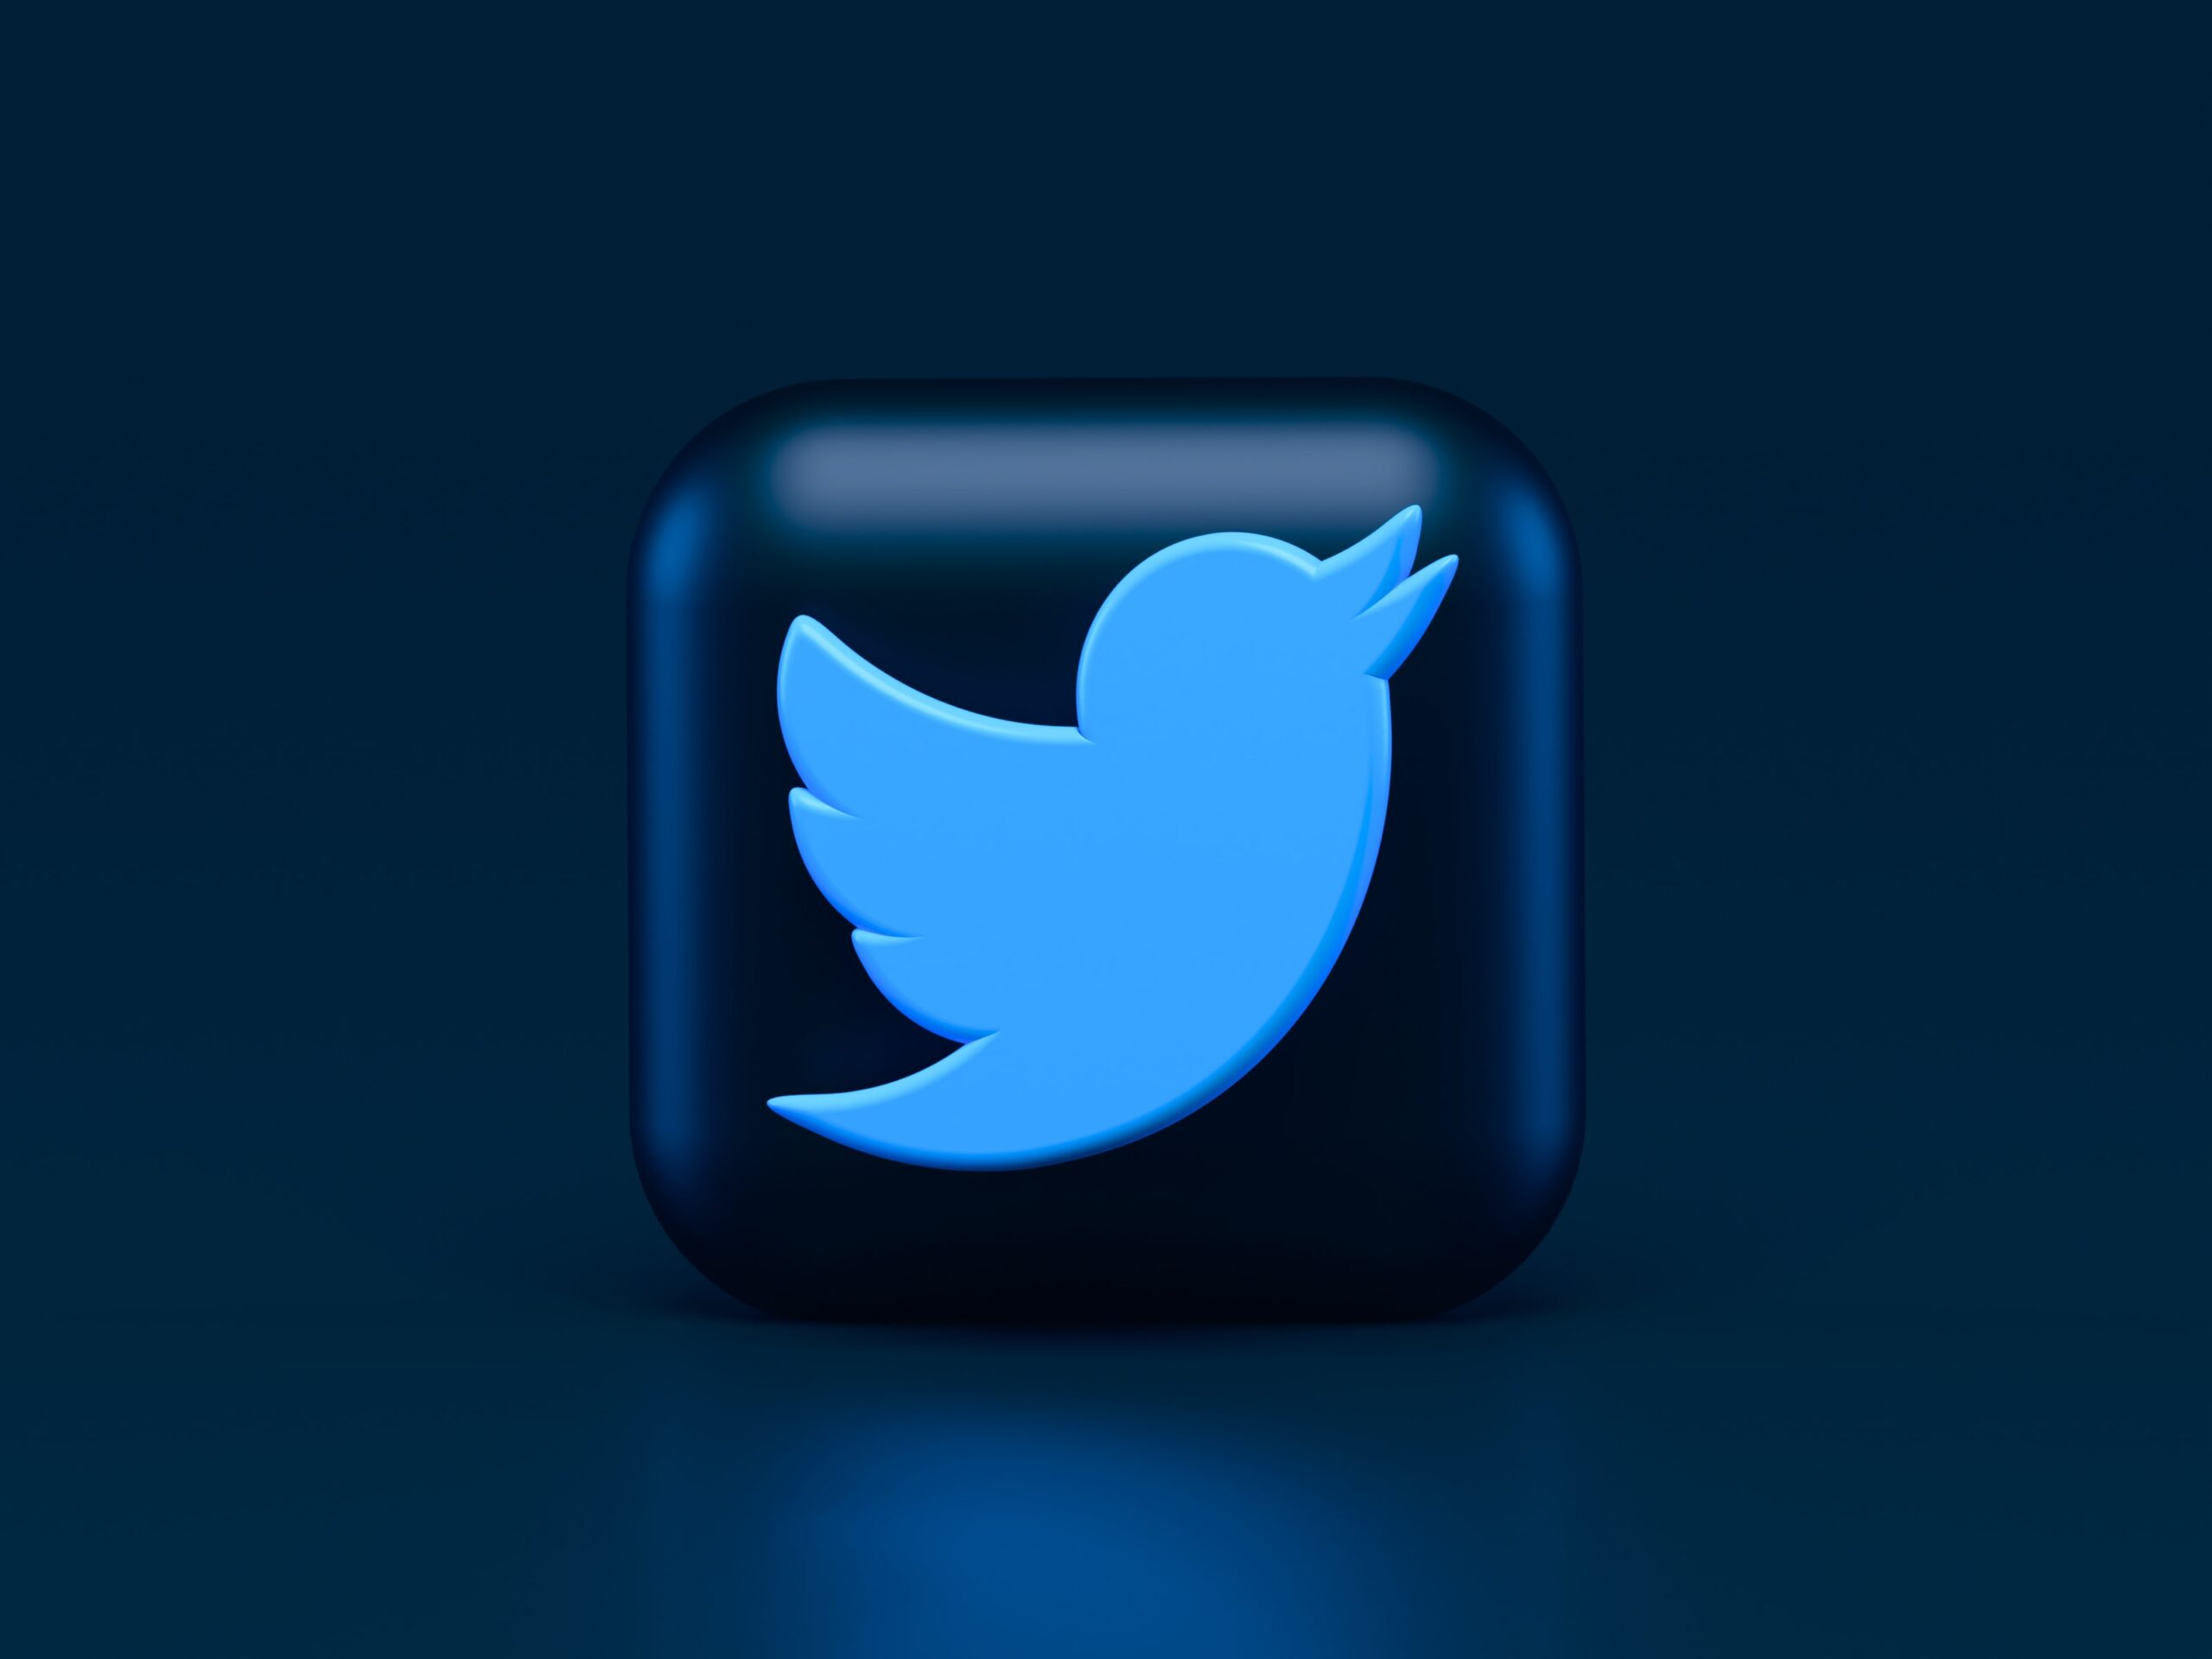 Twitter permanently suspends fake accounts it mistakenly verified